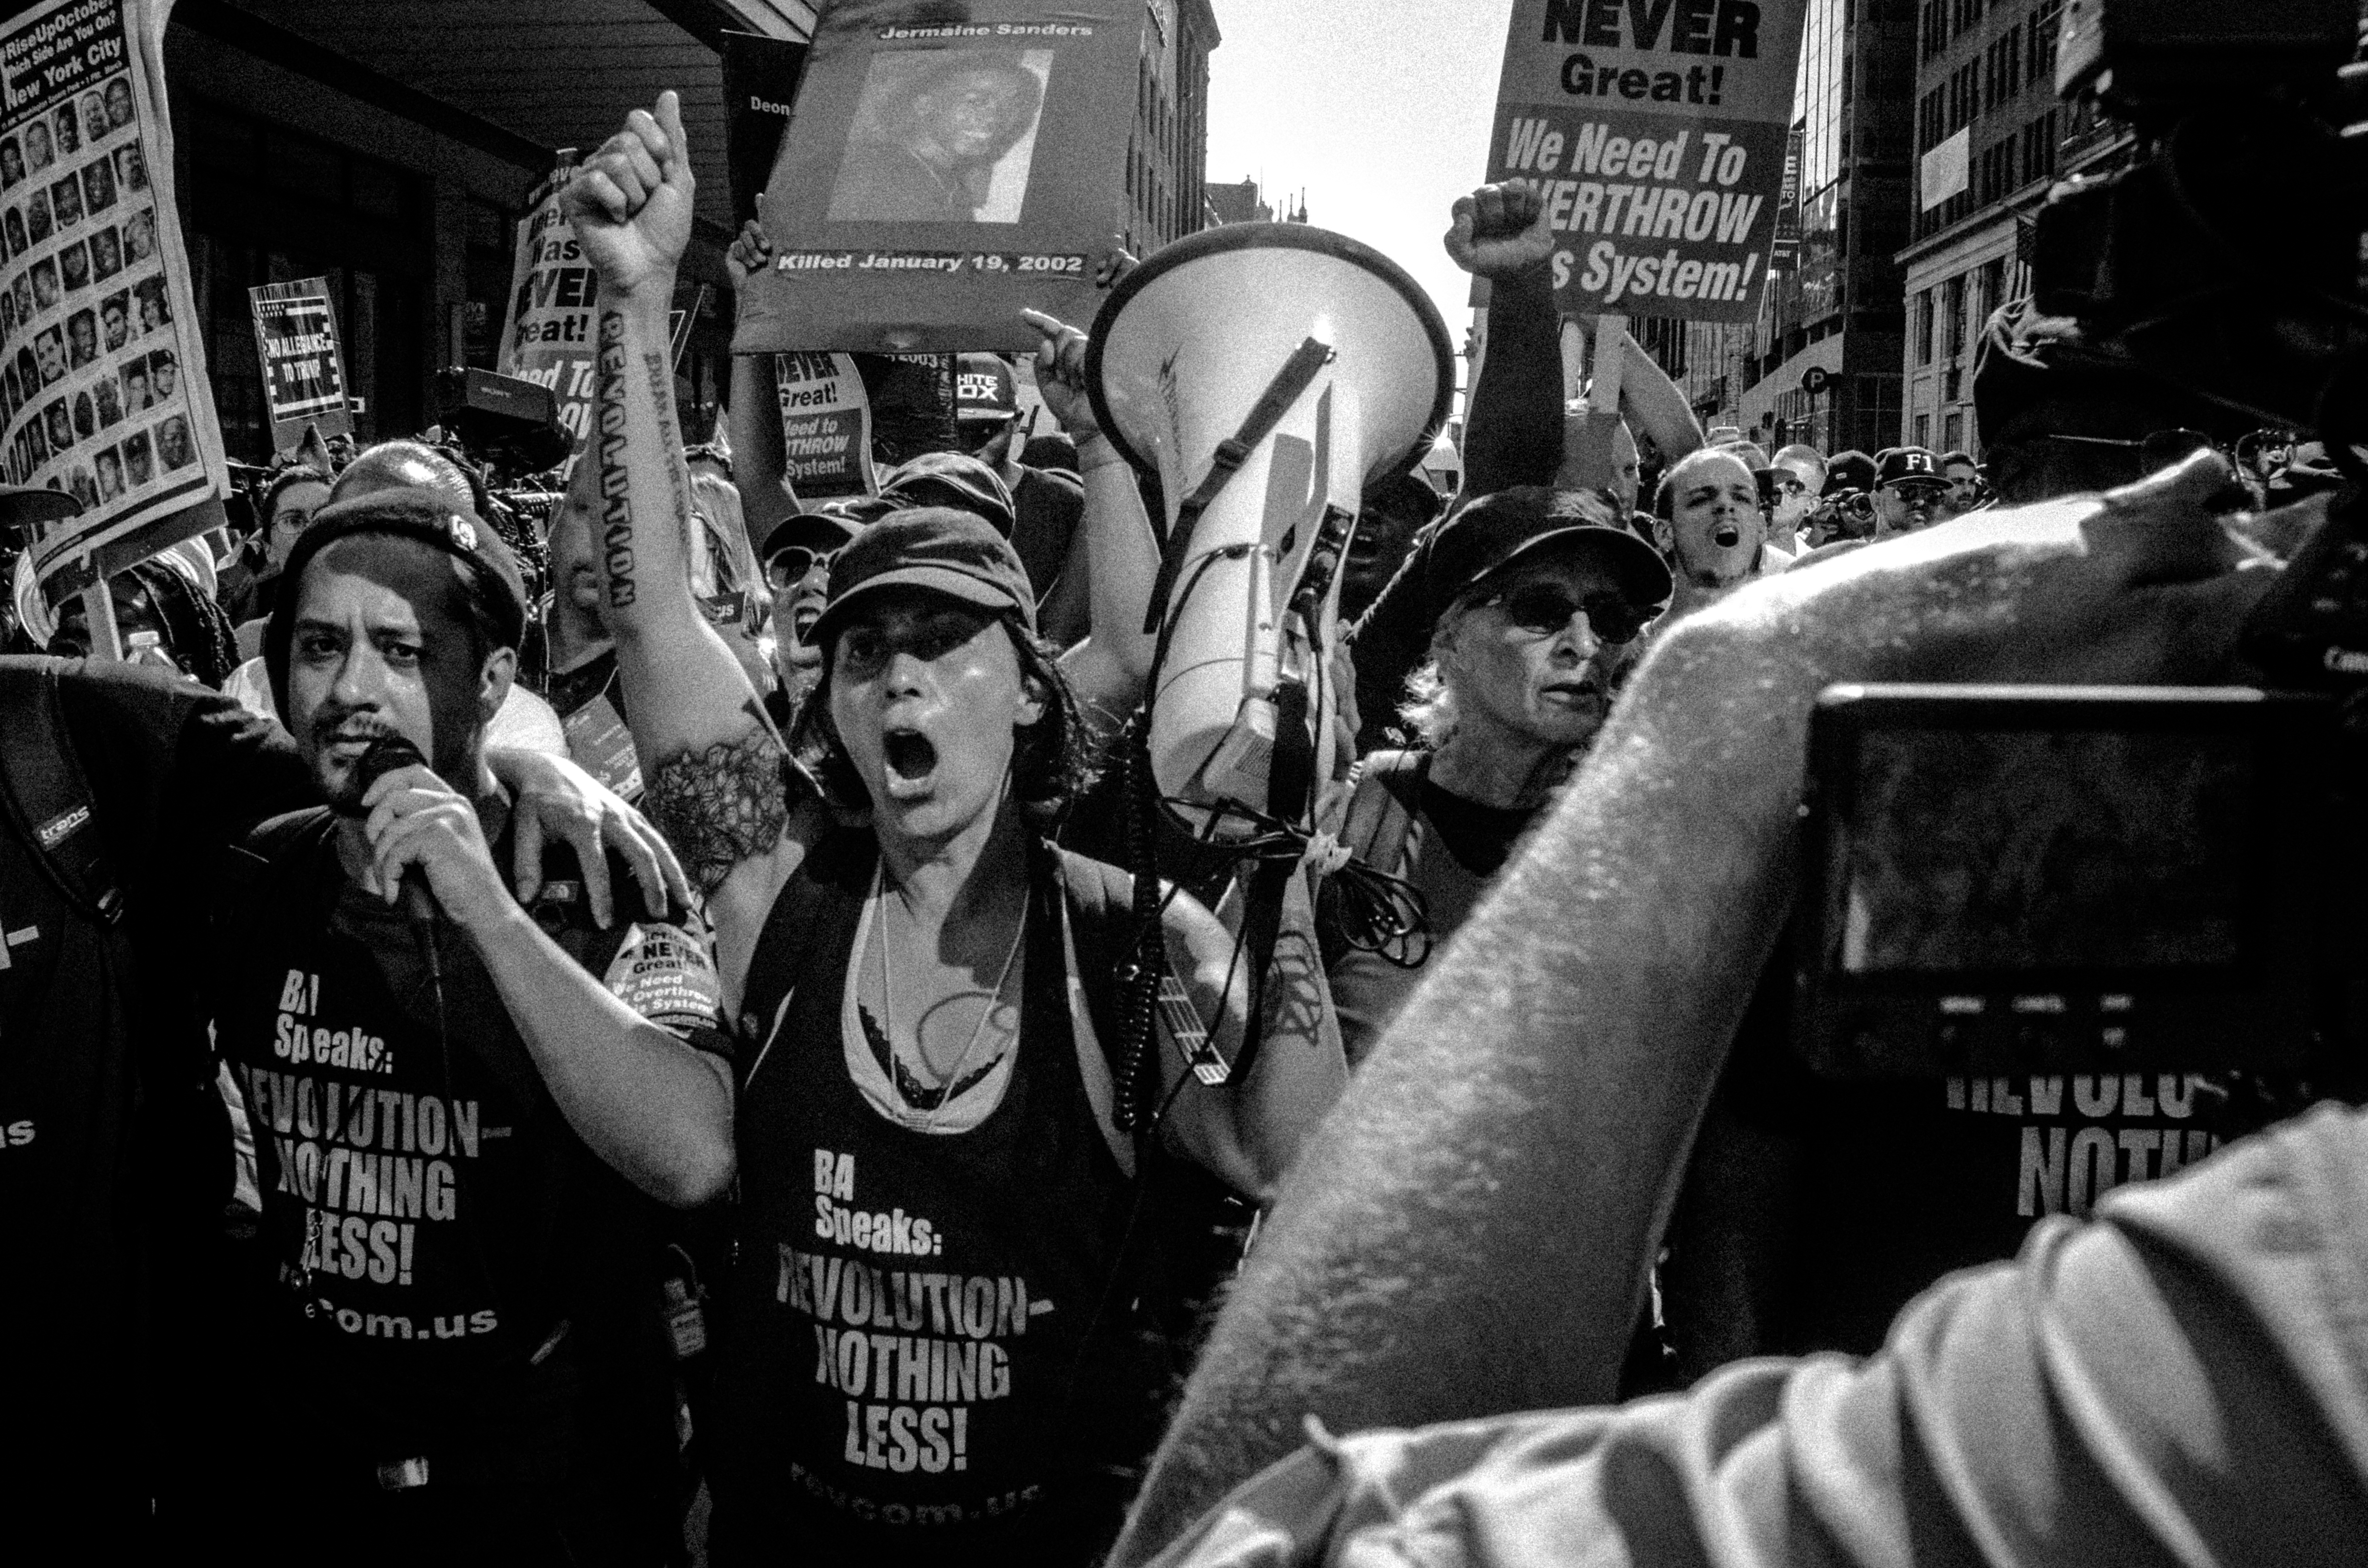 Cleveland, Ohio. 19th July, 2016. Cleveland, Ohio. 19th July, 2016. Bob Avakian communists chant for revolution as they lead a small group of demonstrators during the 2016 Republican National Convention in Cleveland, Ohio.